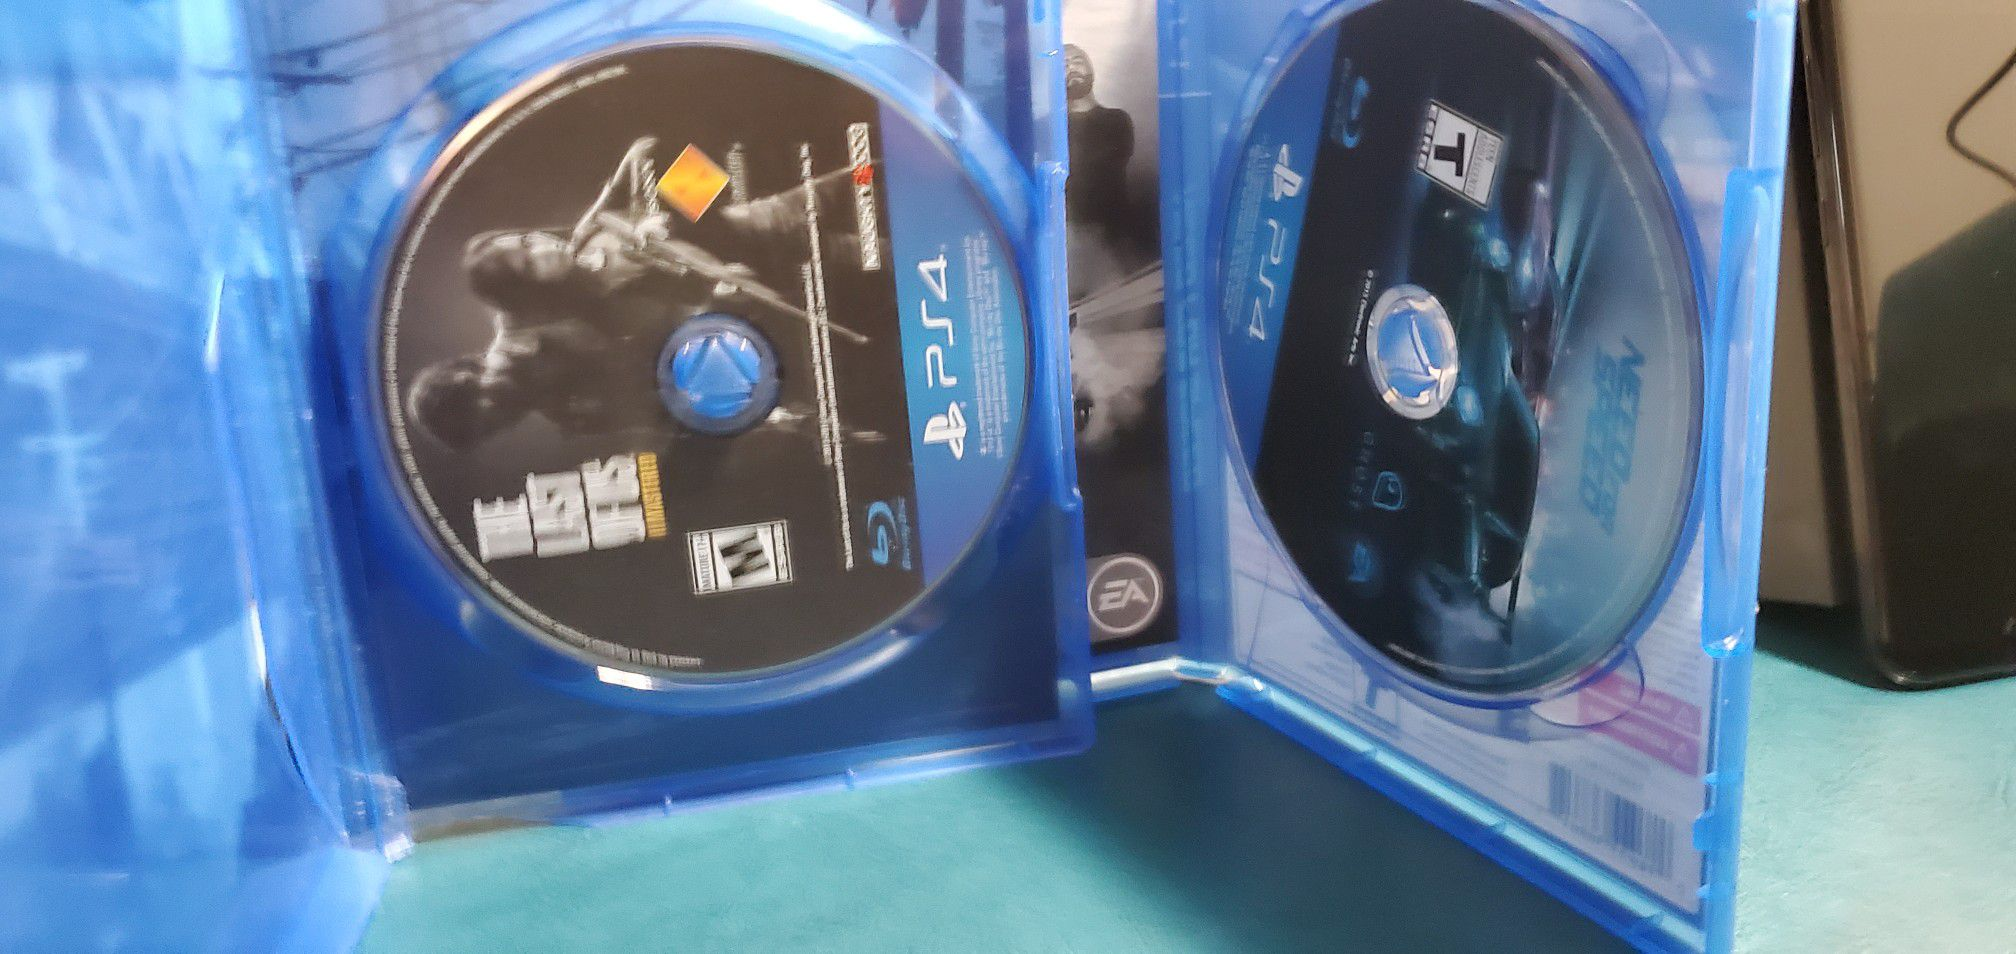 PS4 VIDEO GAMES